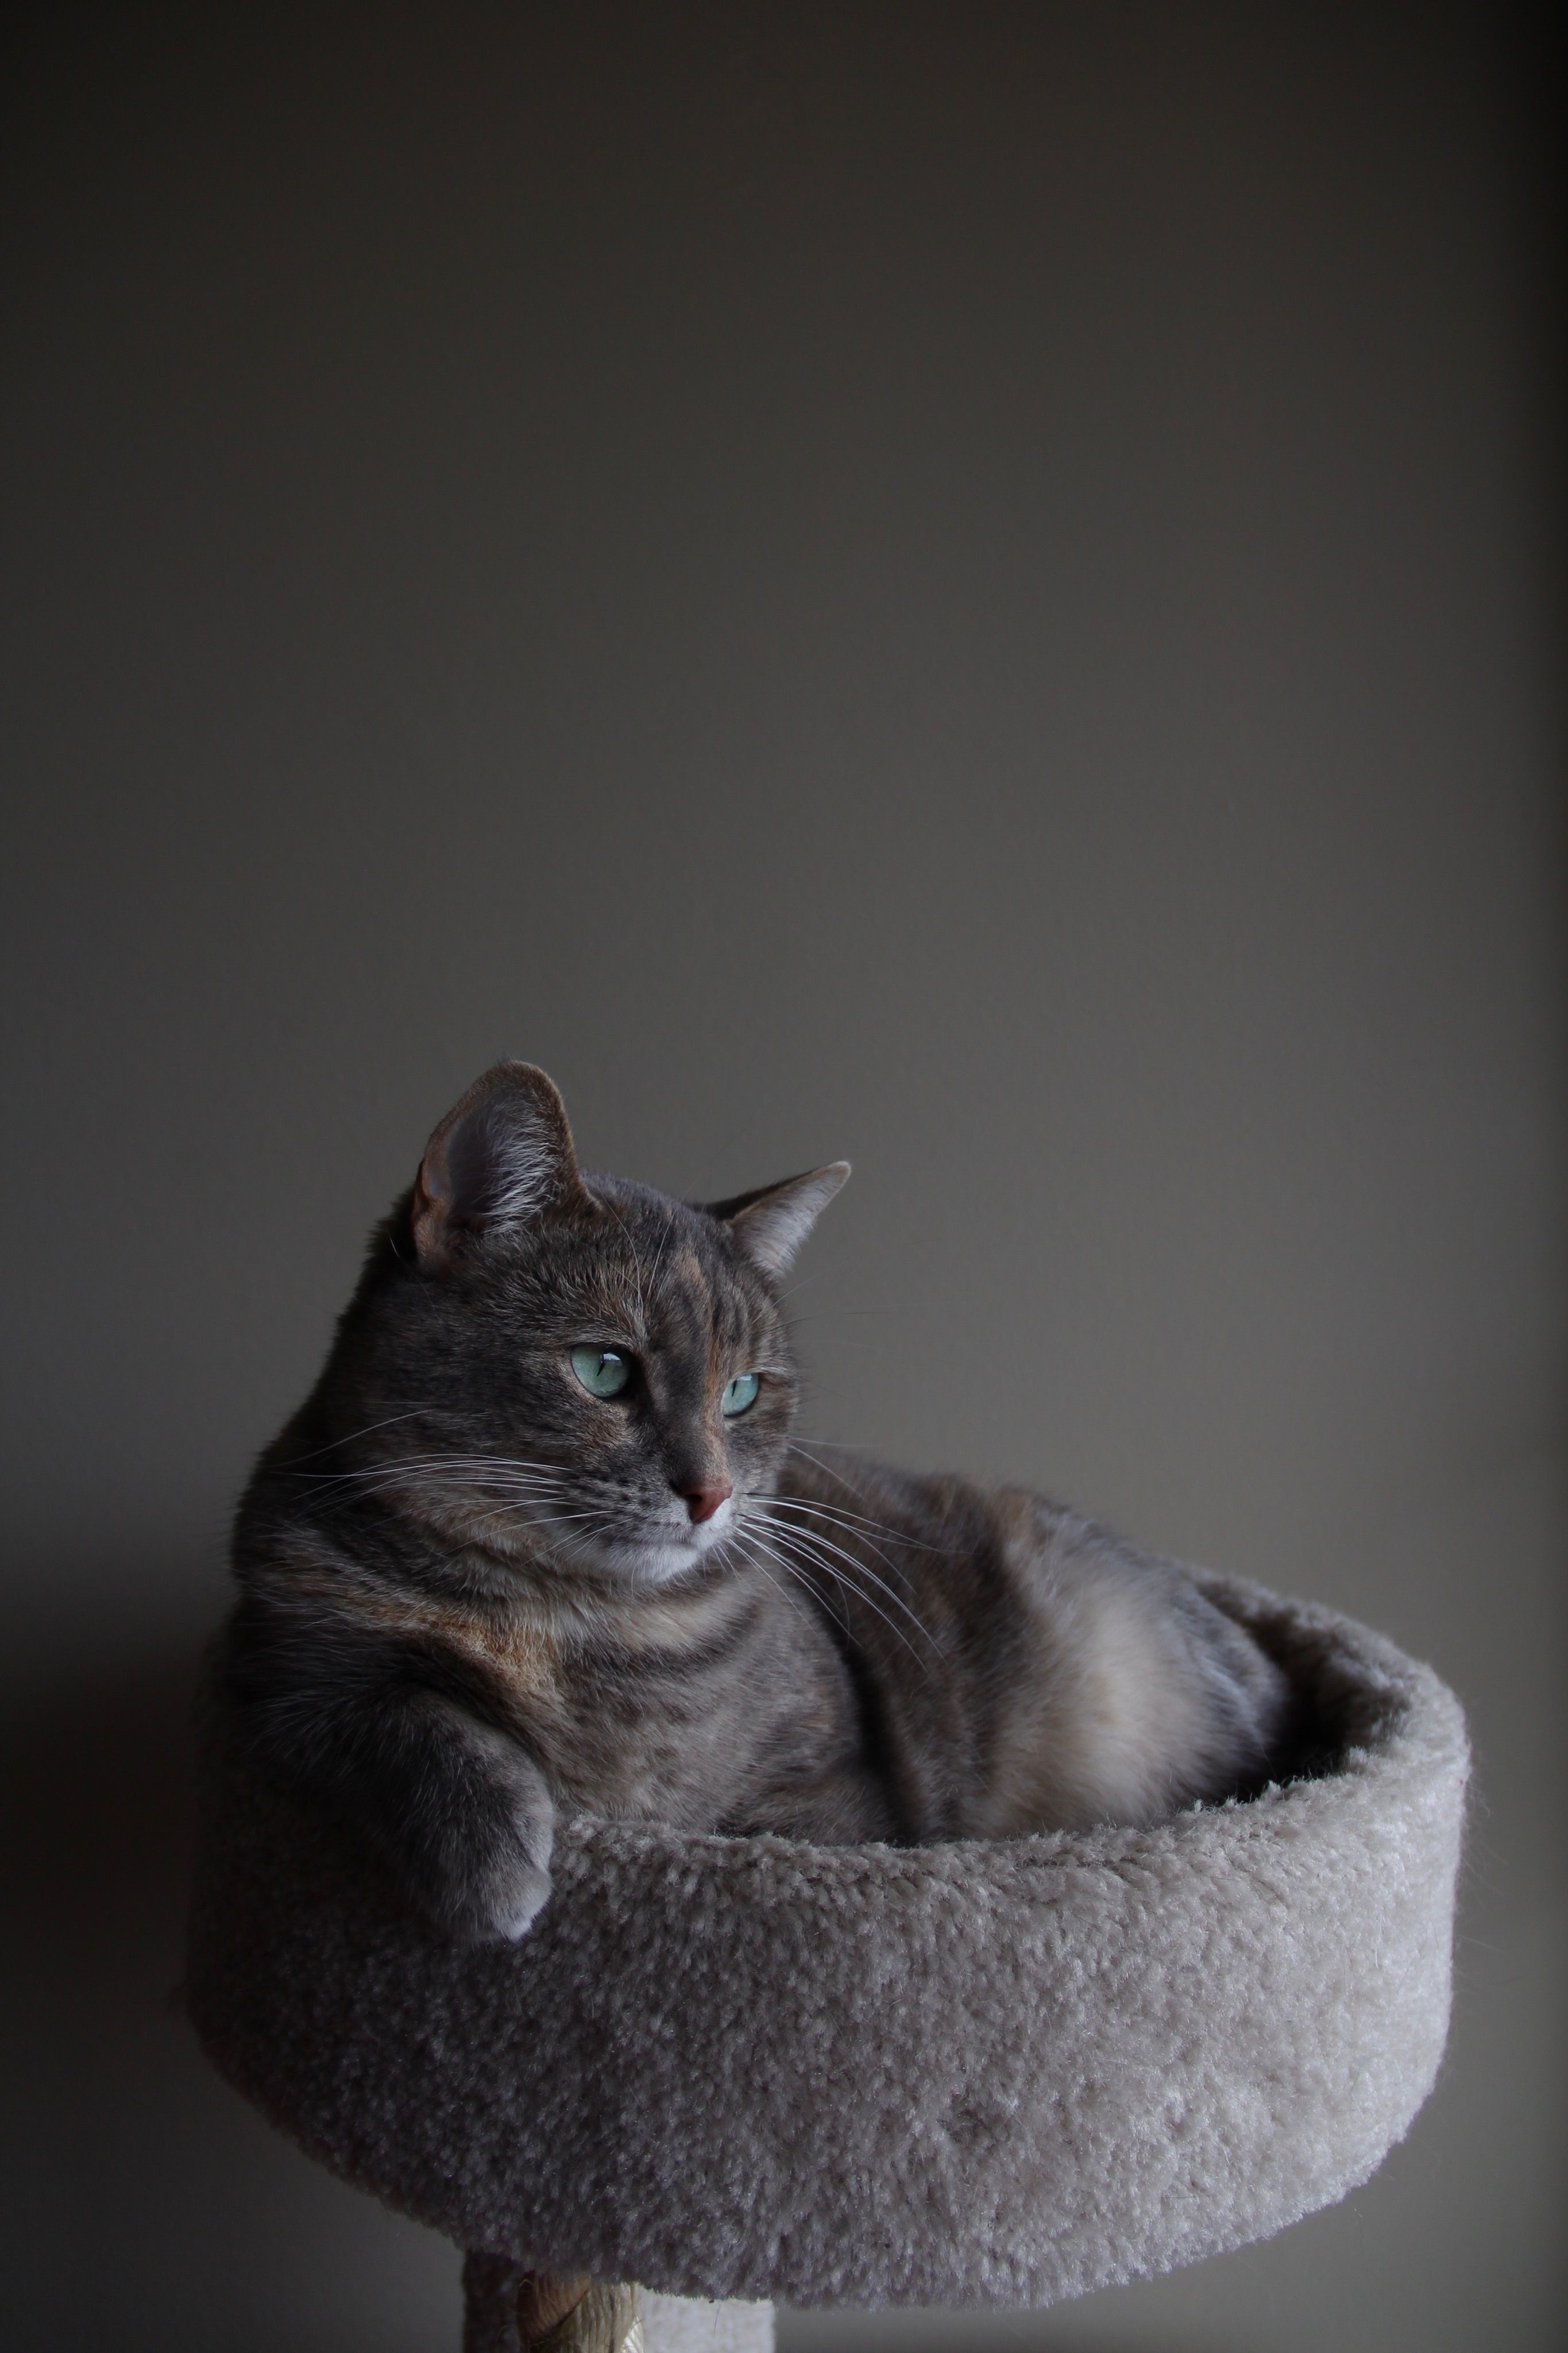 9 Impressive Cat Images Silver Tabby Cat On Gray Cat Tree Inside Room Cat Abyssinian Grey In 2020 Tabby Cat Silver Tabby Cat Cat In Heat